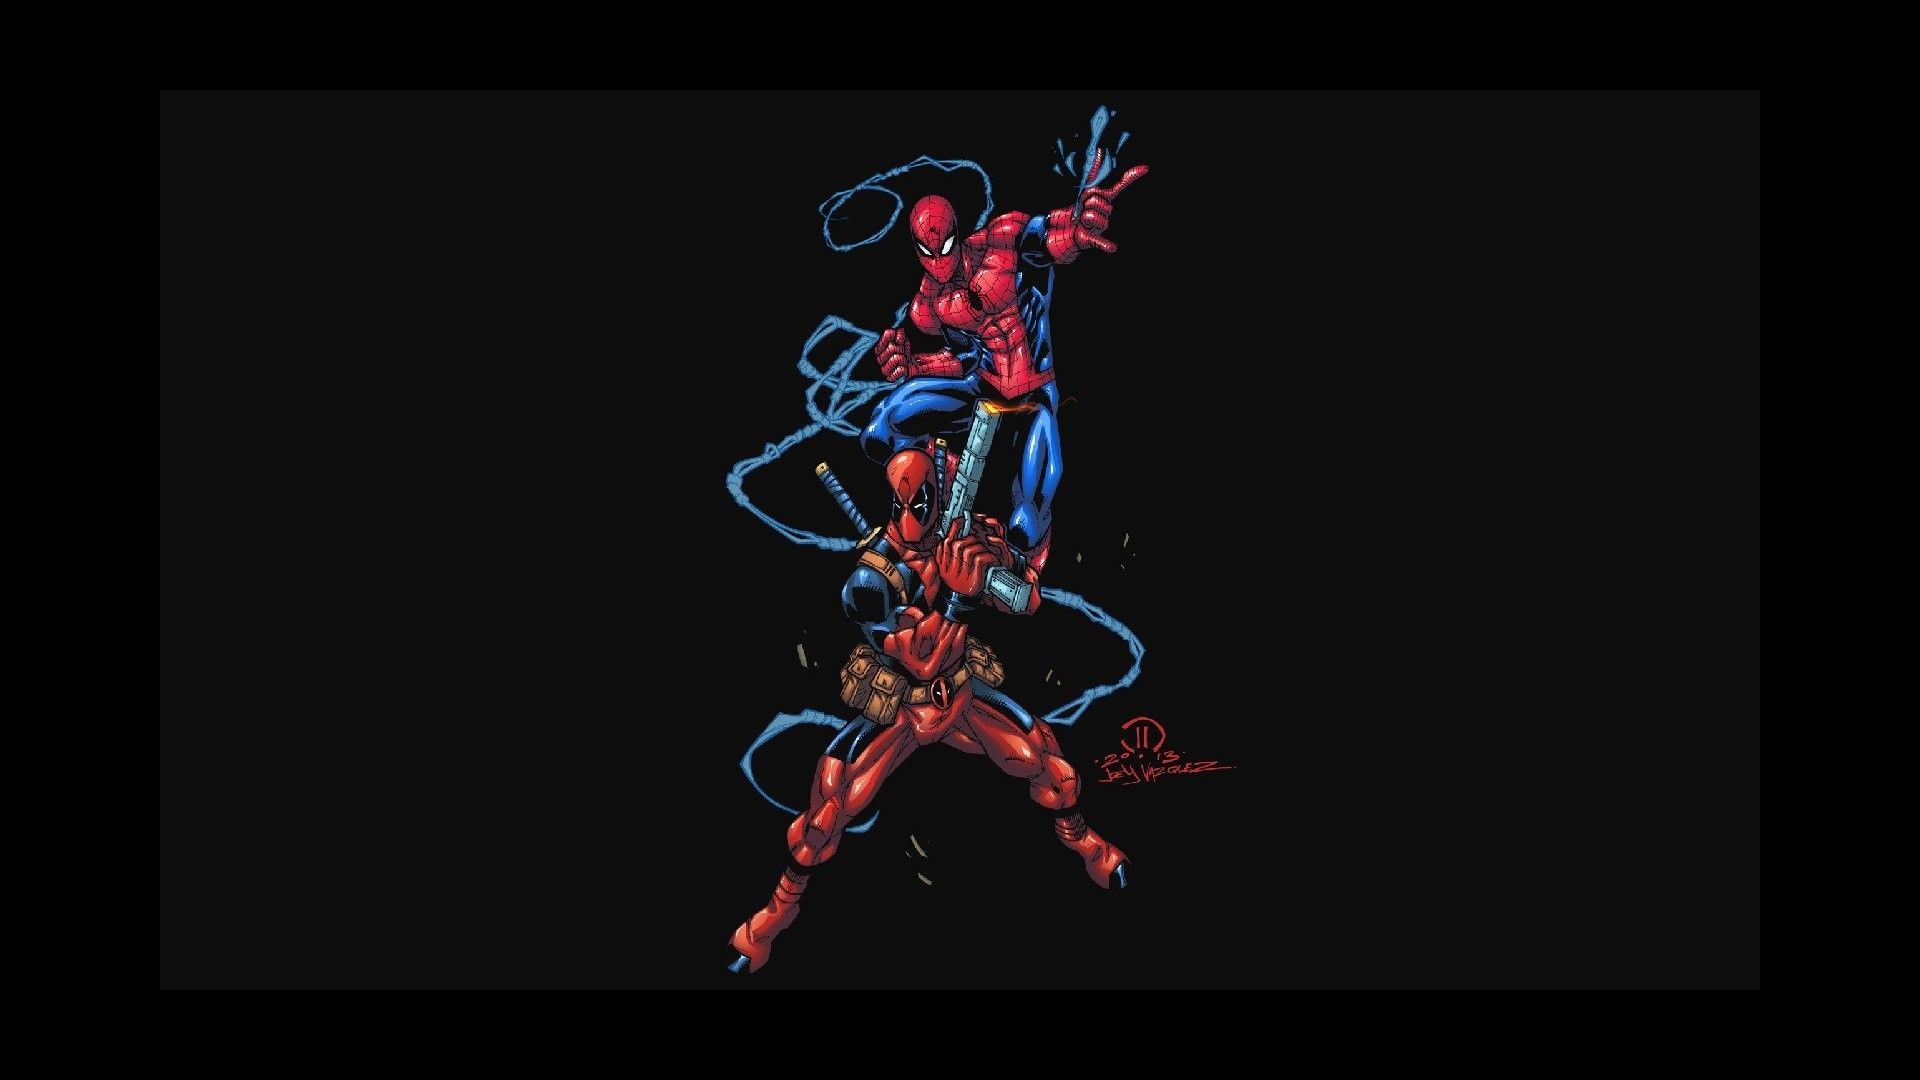 1920x1080 Deadpool and Spiderman Wallpaper (71+ images)